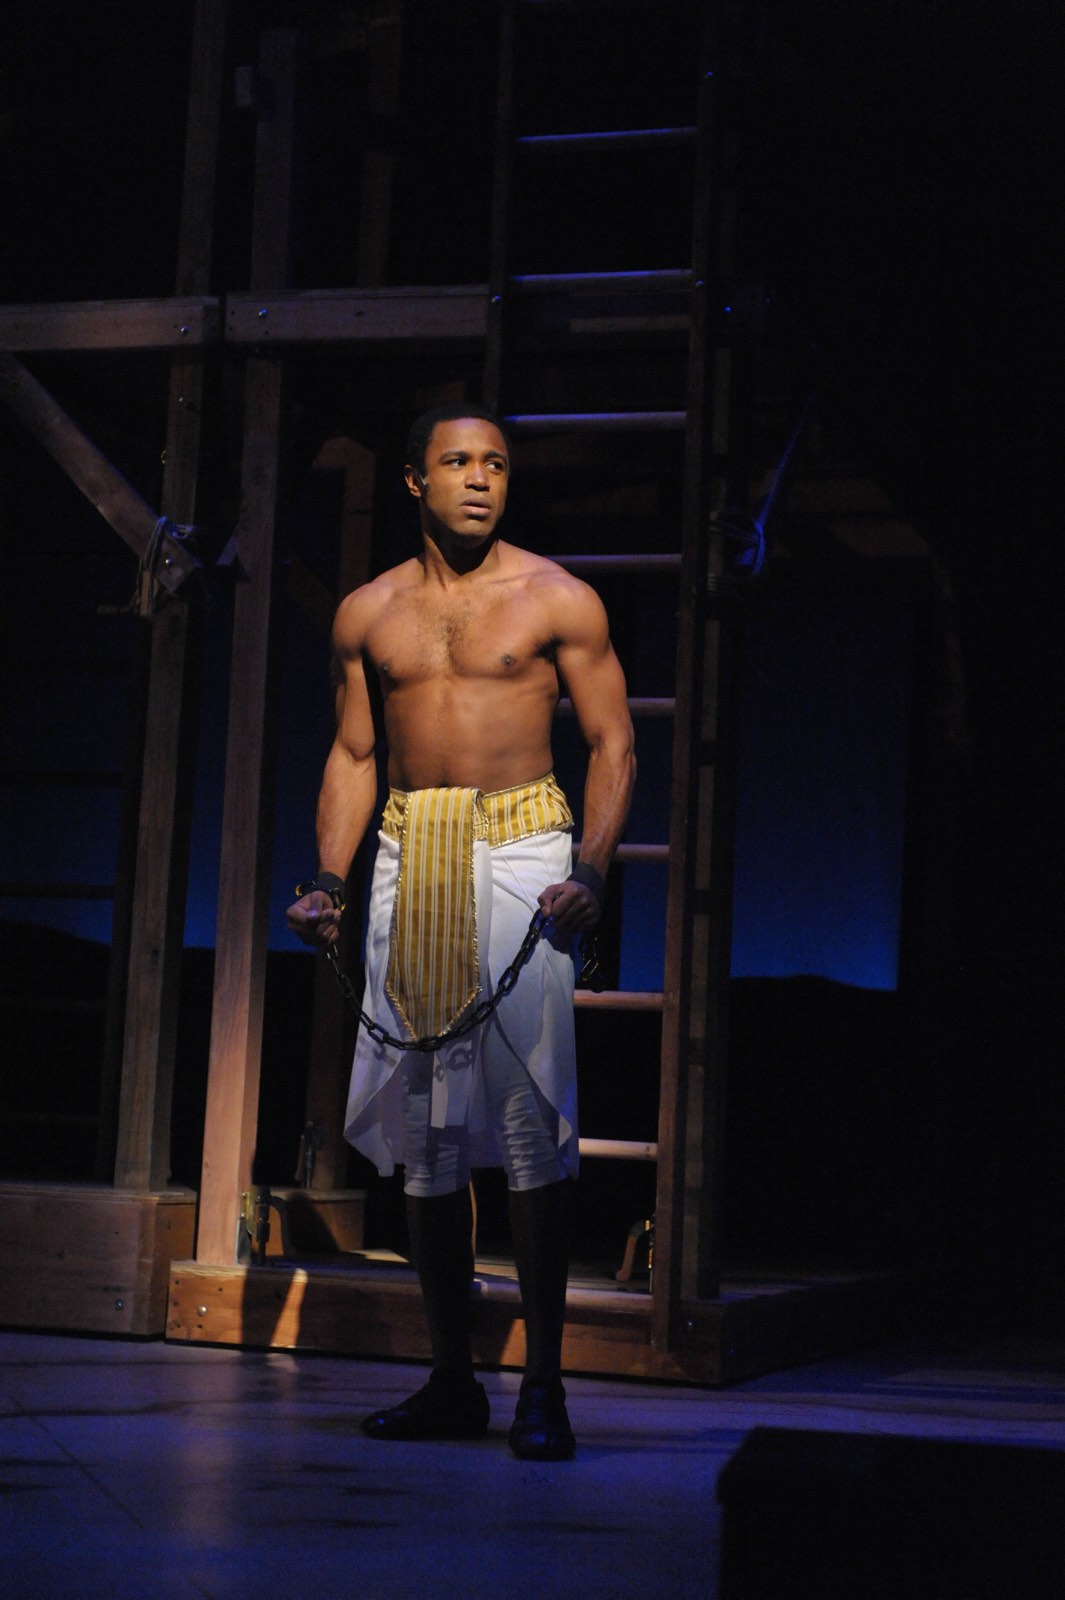 JOSEPH AND THE AMAZING TECHNICOLOR DREAMCOAT - Alan Wiggins as Joseph<br>Set design by Eugenia Furneaux, Lighting by Dan Covey, Costumes by Ivania Stack - photo by Stan Barouh